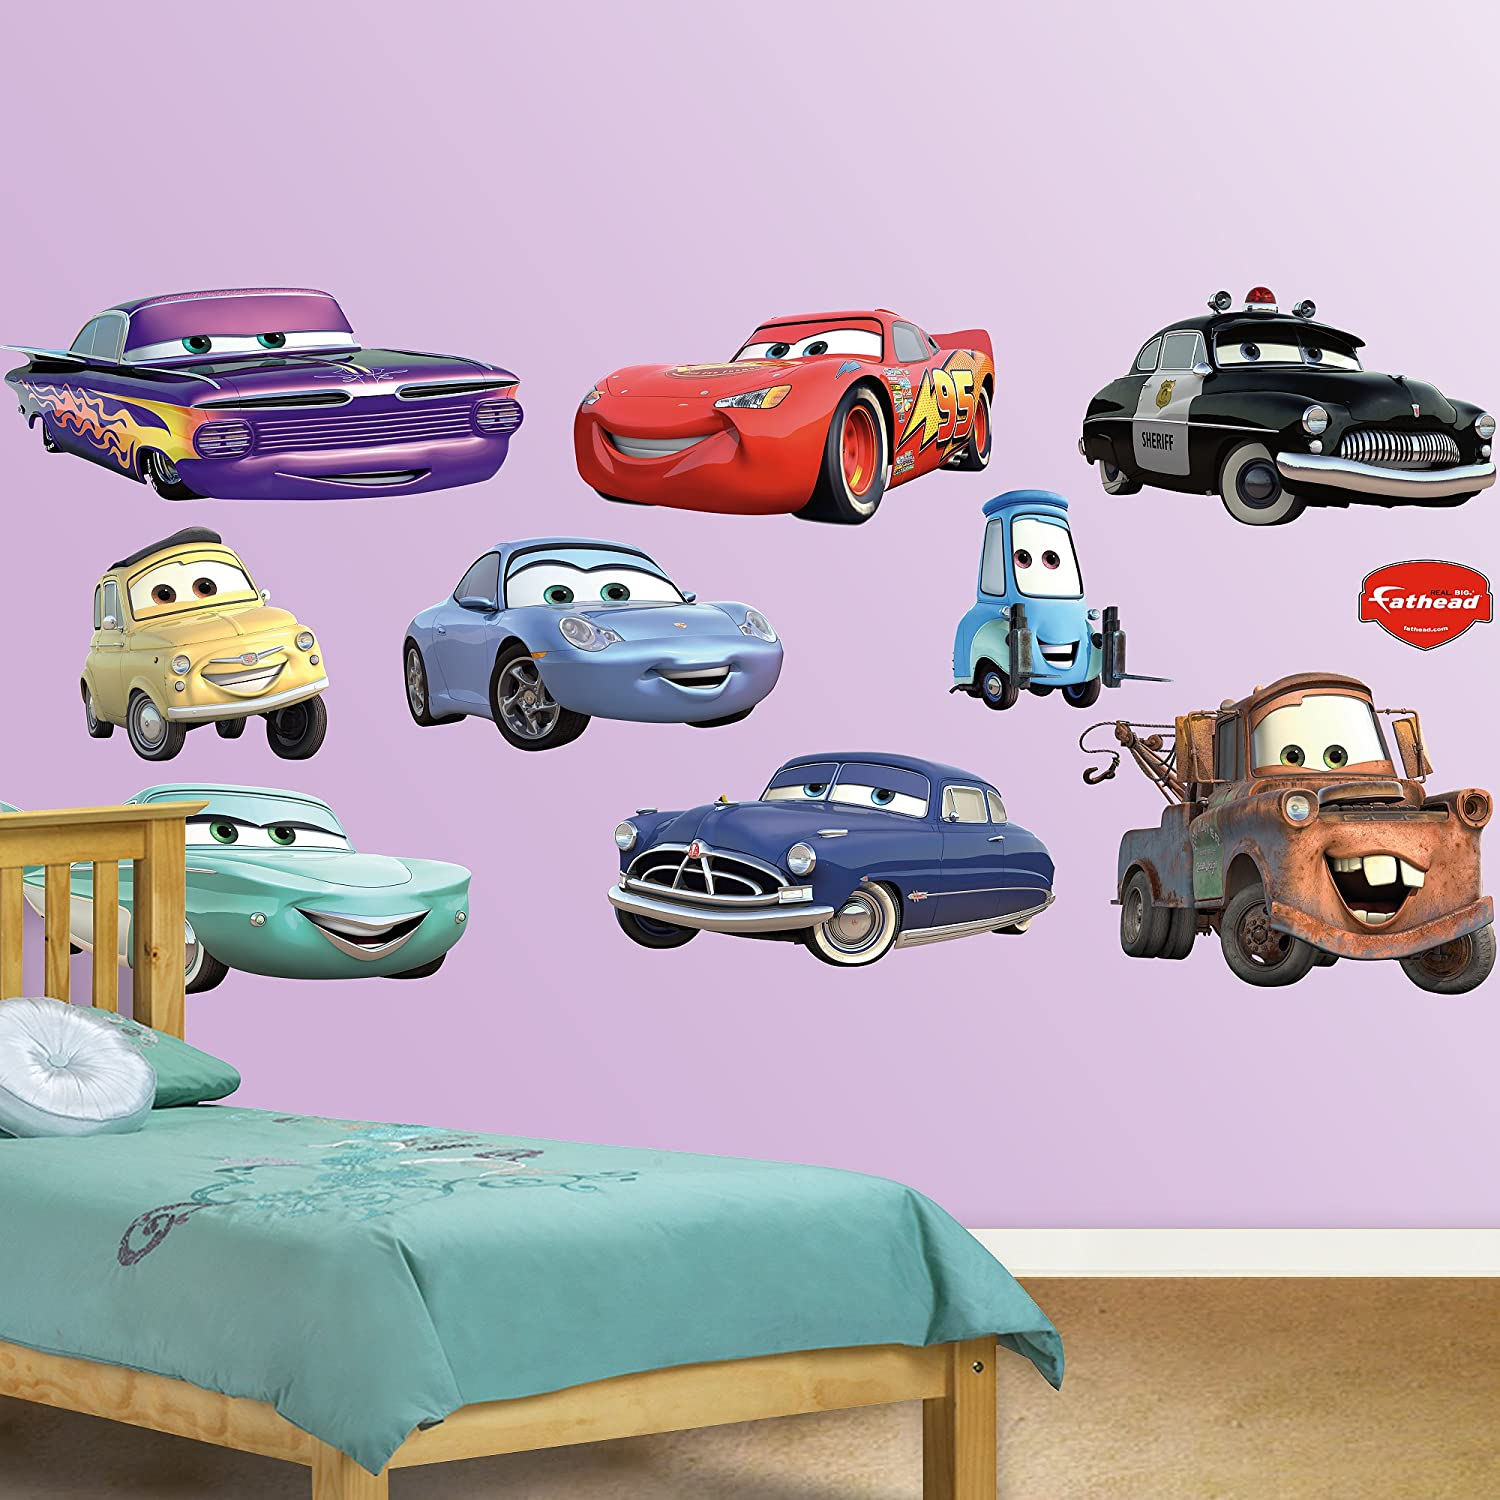 Amazon.com: FATHEAD Disney/Pixar Cars Collection Graphic Wall Décor: Home U0026  Kitchen